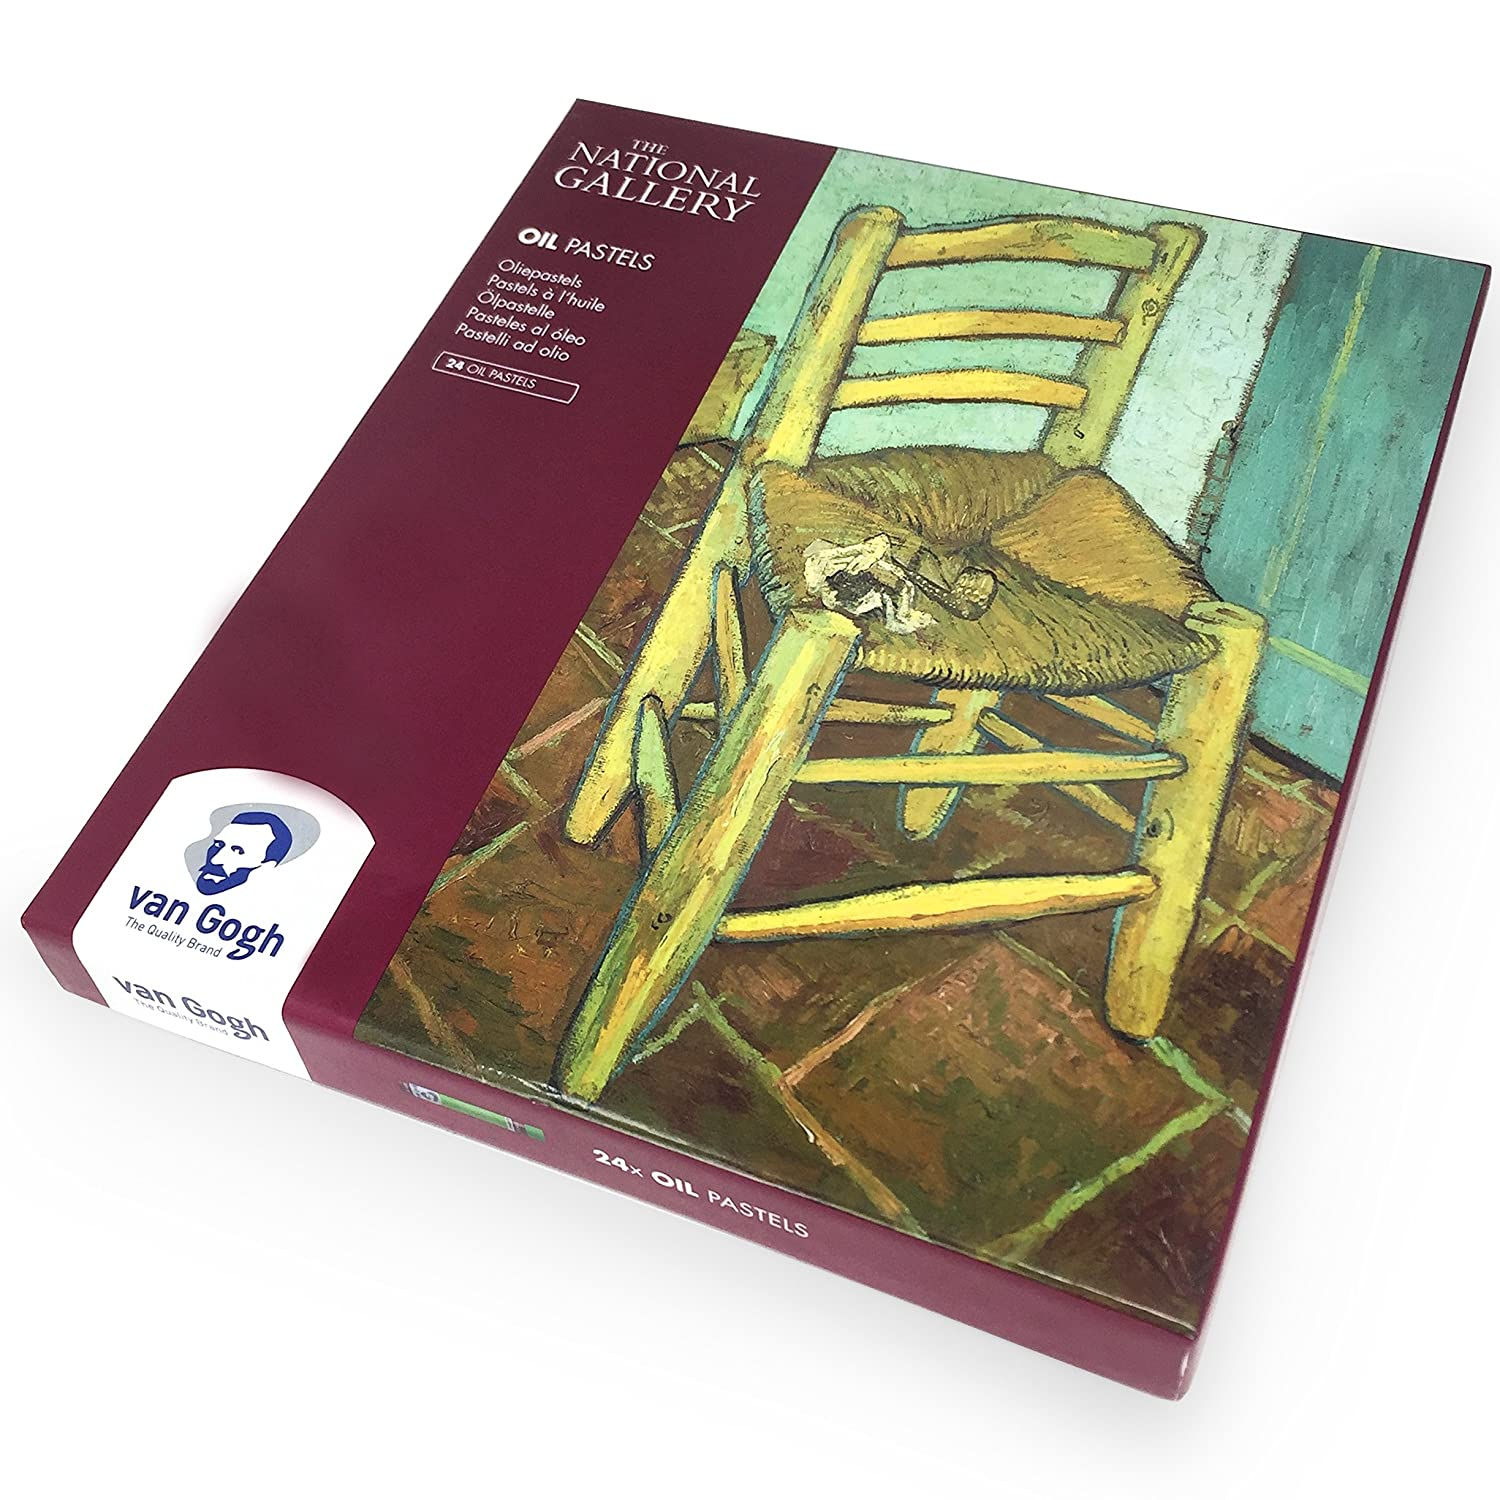 Royal Talens – Van Gogh – The National Gallery – Limited Edition – pastelli ad olio – Confezione da 24